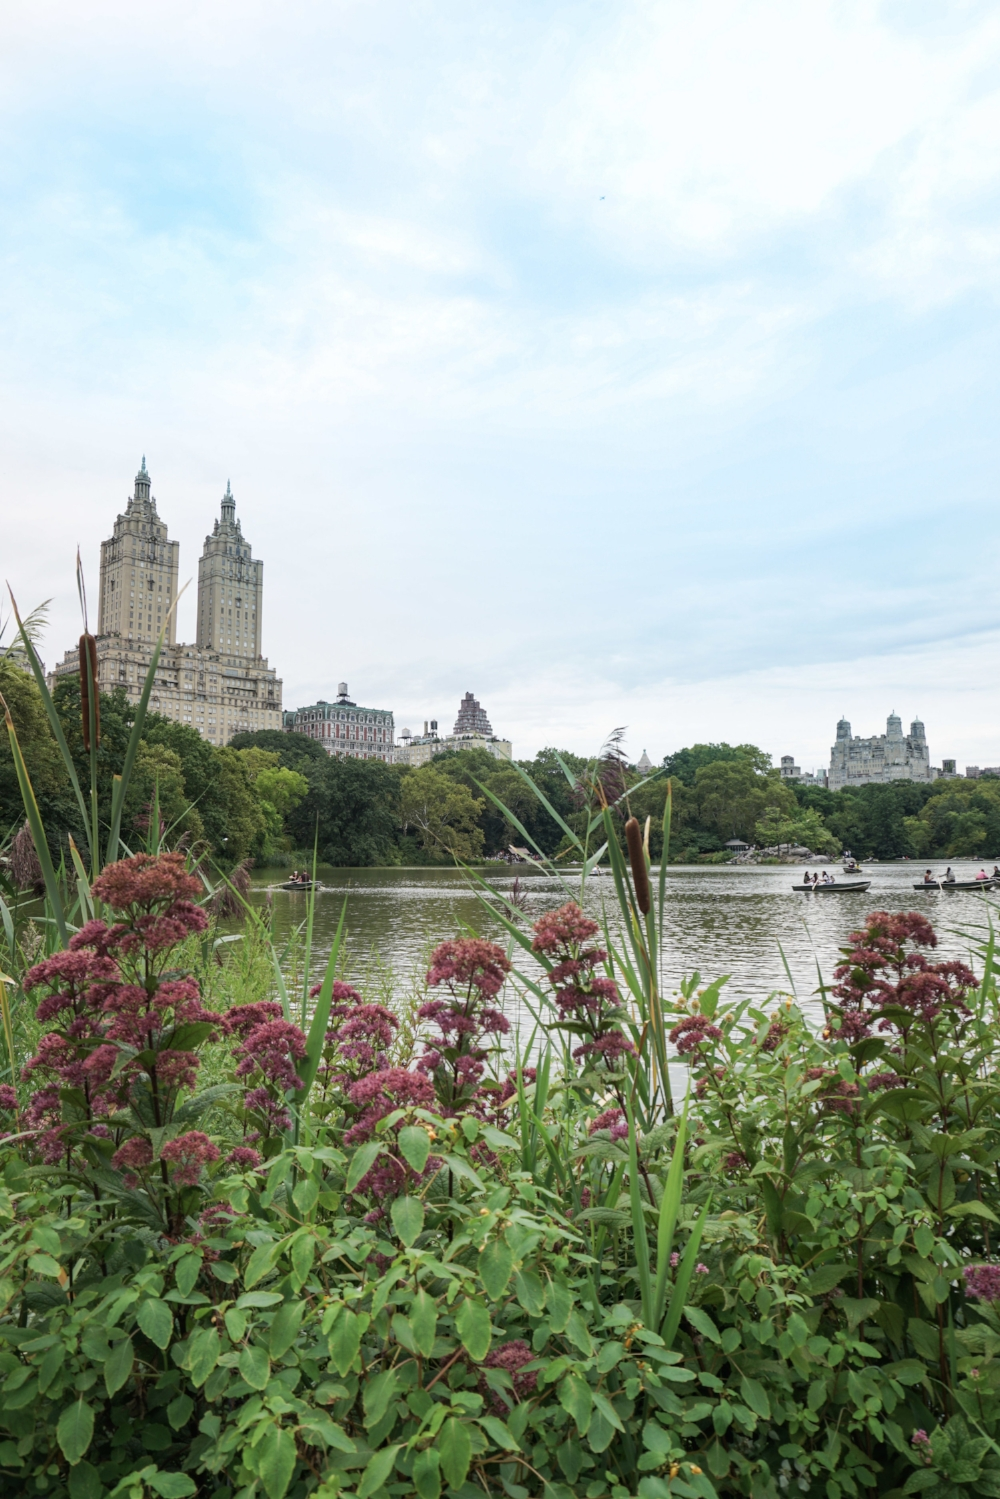 curio.trips.usa.nyc.central.park.lake.jpg